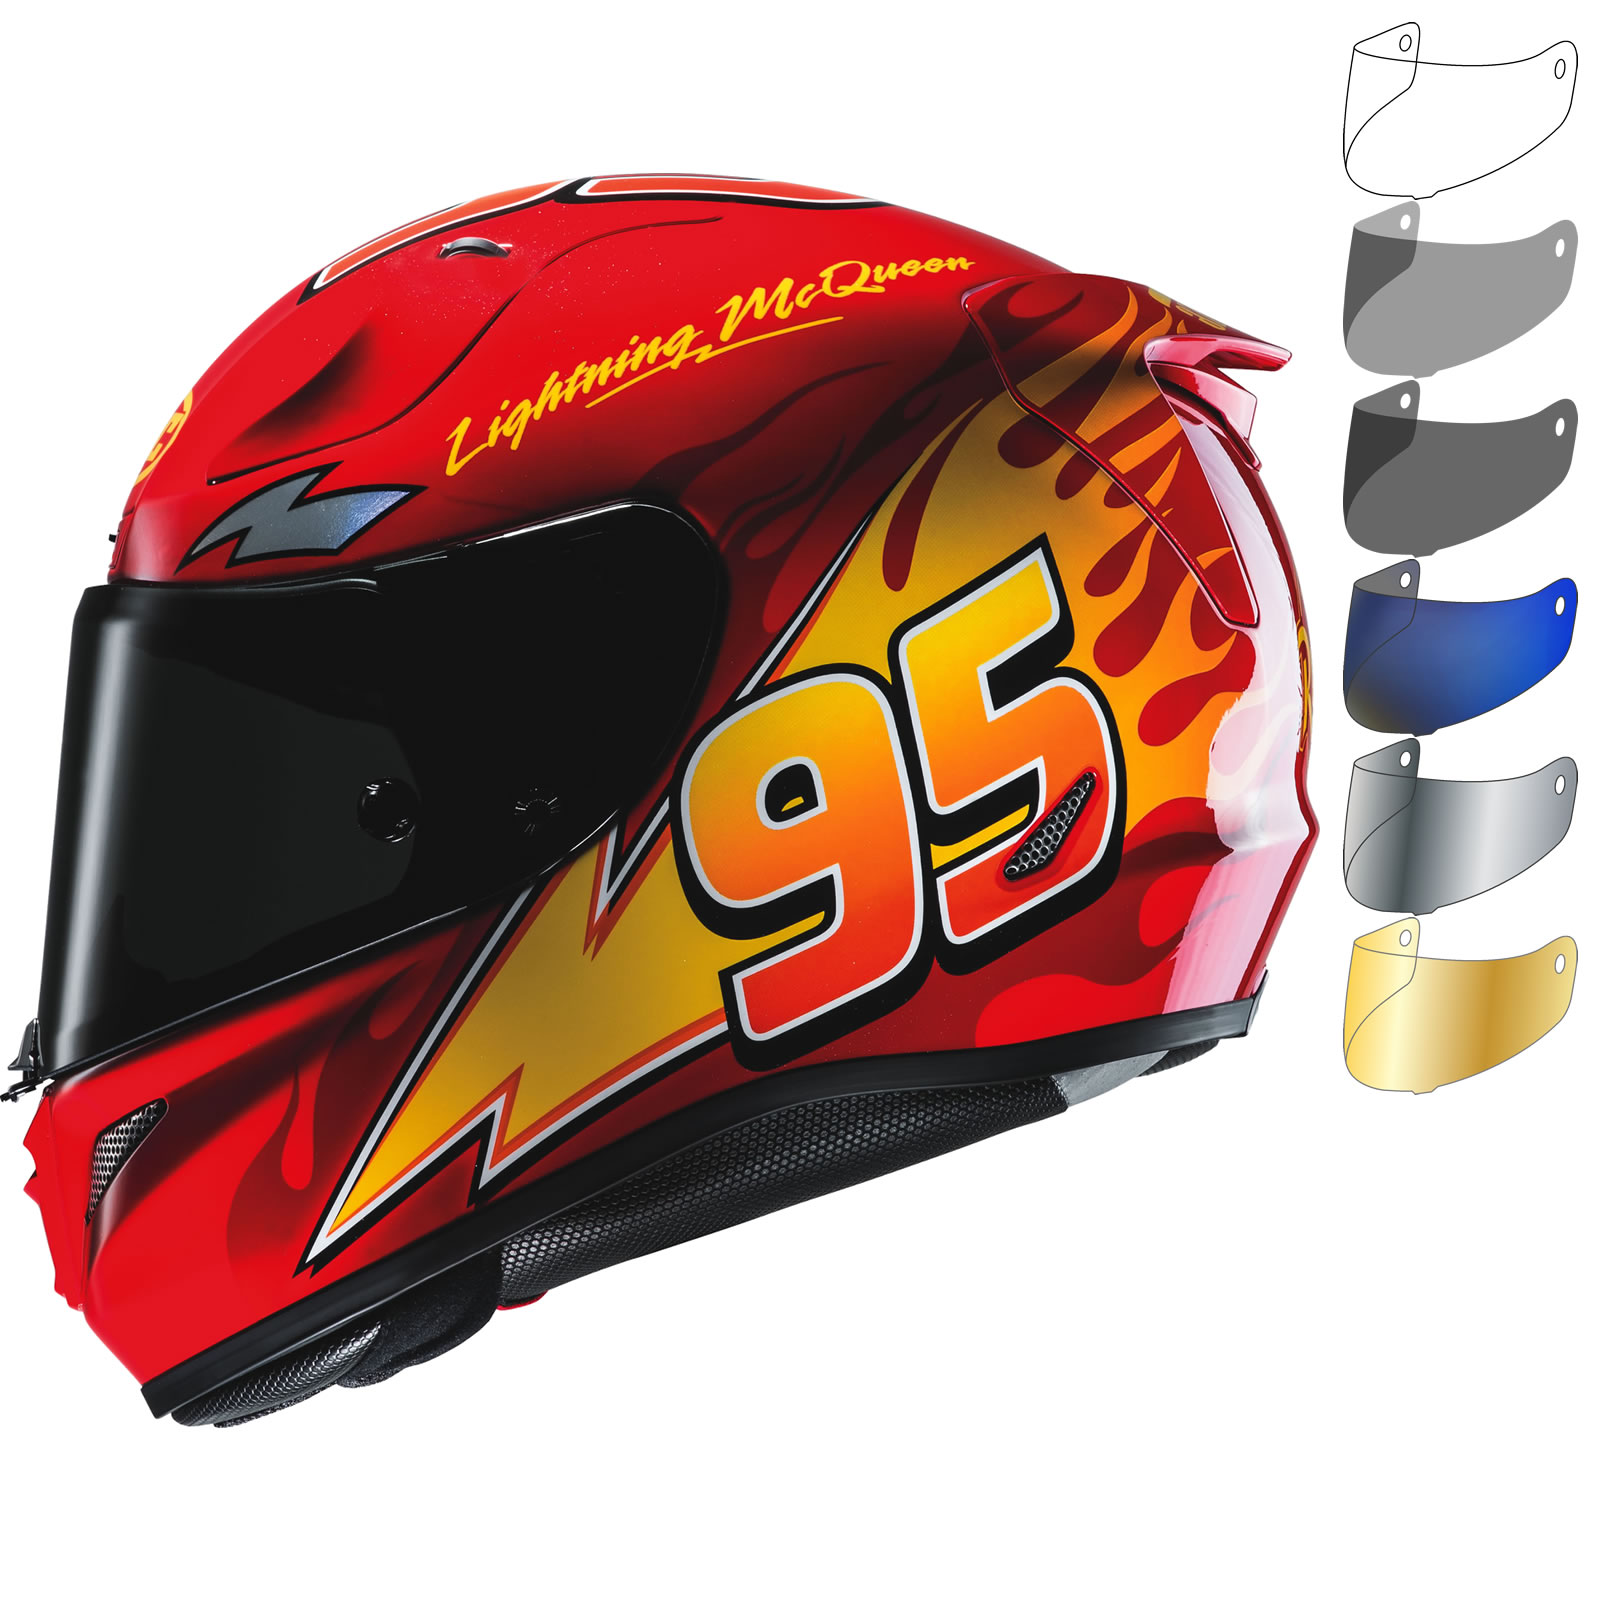 Hjc Motorcycle Helmet Sizing Chart Honoursboards Co Uk